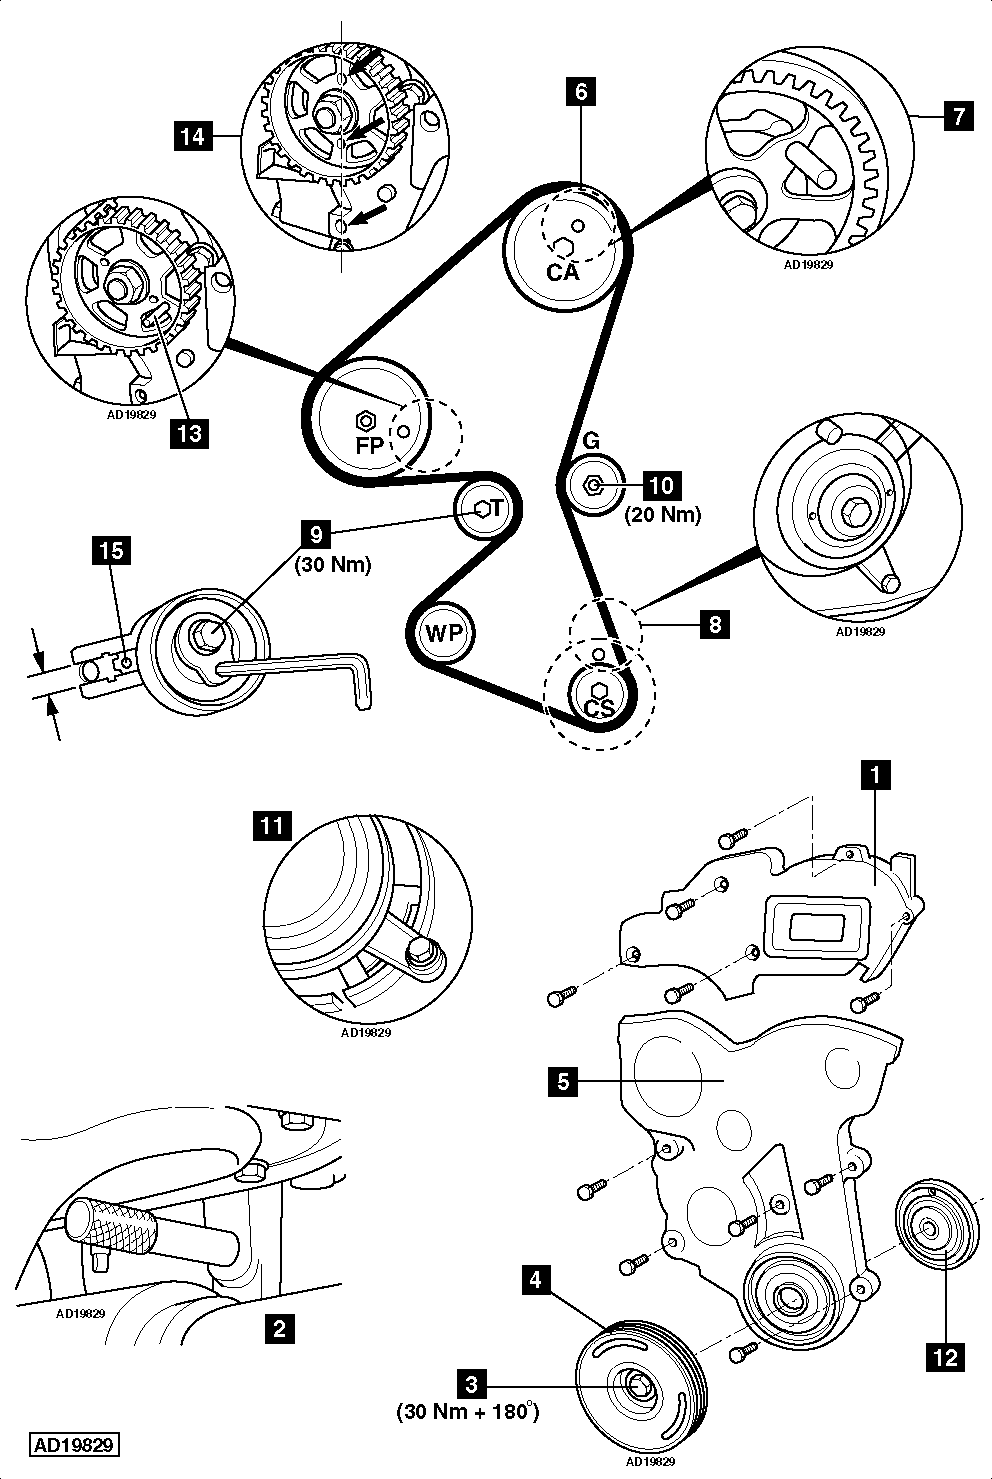 2012 Toyota Camry Car Stereo Wiring Diagram further  as well Introduction furthermore 814 k 1991 Van or truck up to 7 5t Three sided tipper as well Emulyator Sazhevogo Filtra Fap Dpf Sk 05. on toyota 4 7 engine diagram